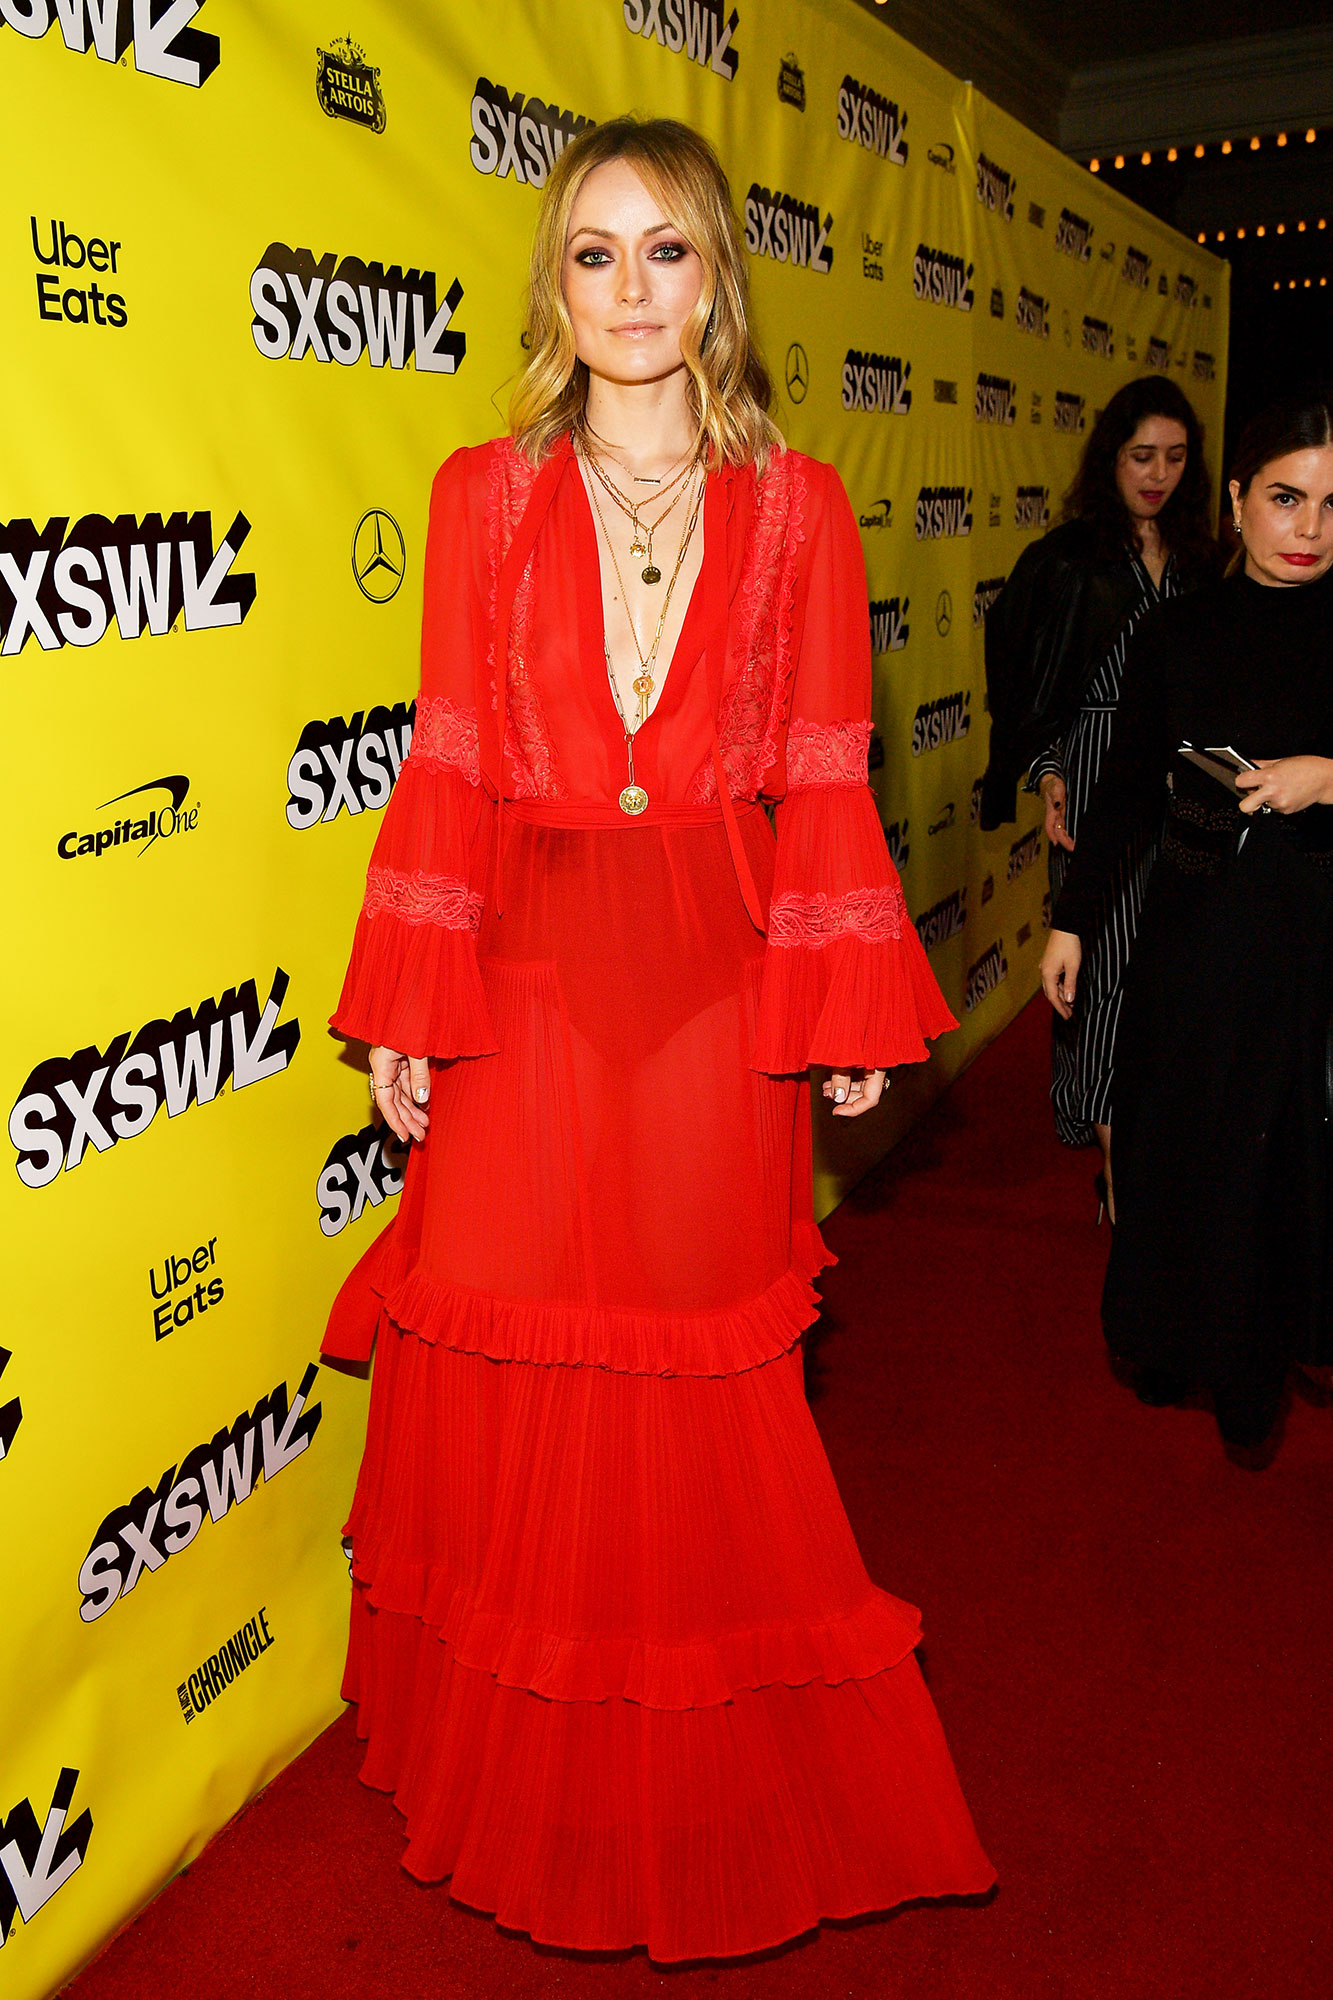 The Stars Bring Their Beauty and Style A-Game to SXSW - Red hot! The Booksmart director showed off her sexy boho style in a flowing Dundas gown and layered chains at the film's premiere on Sunday, March 10.